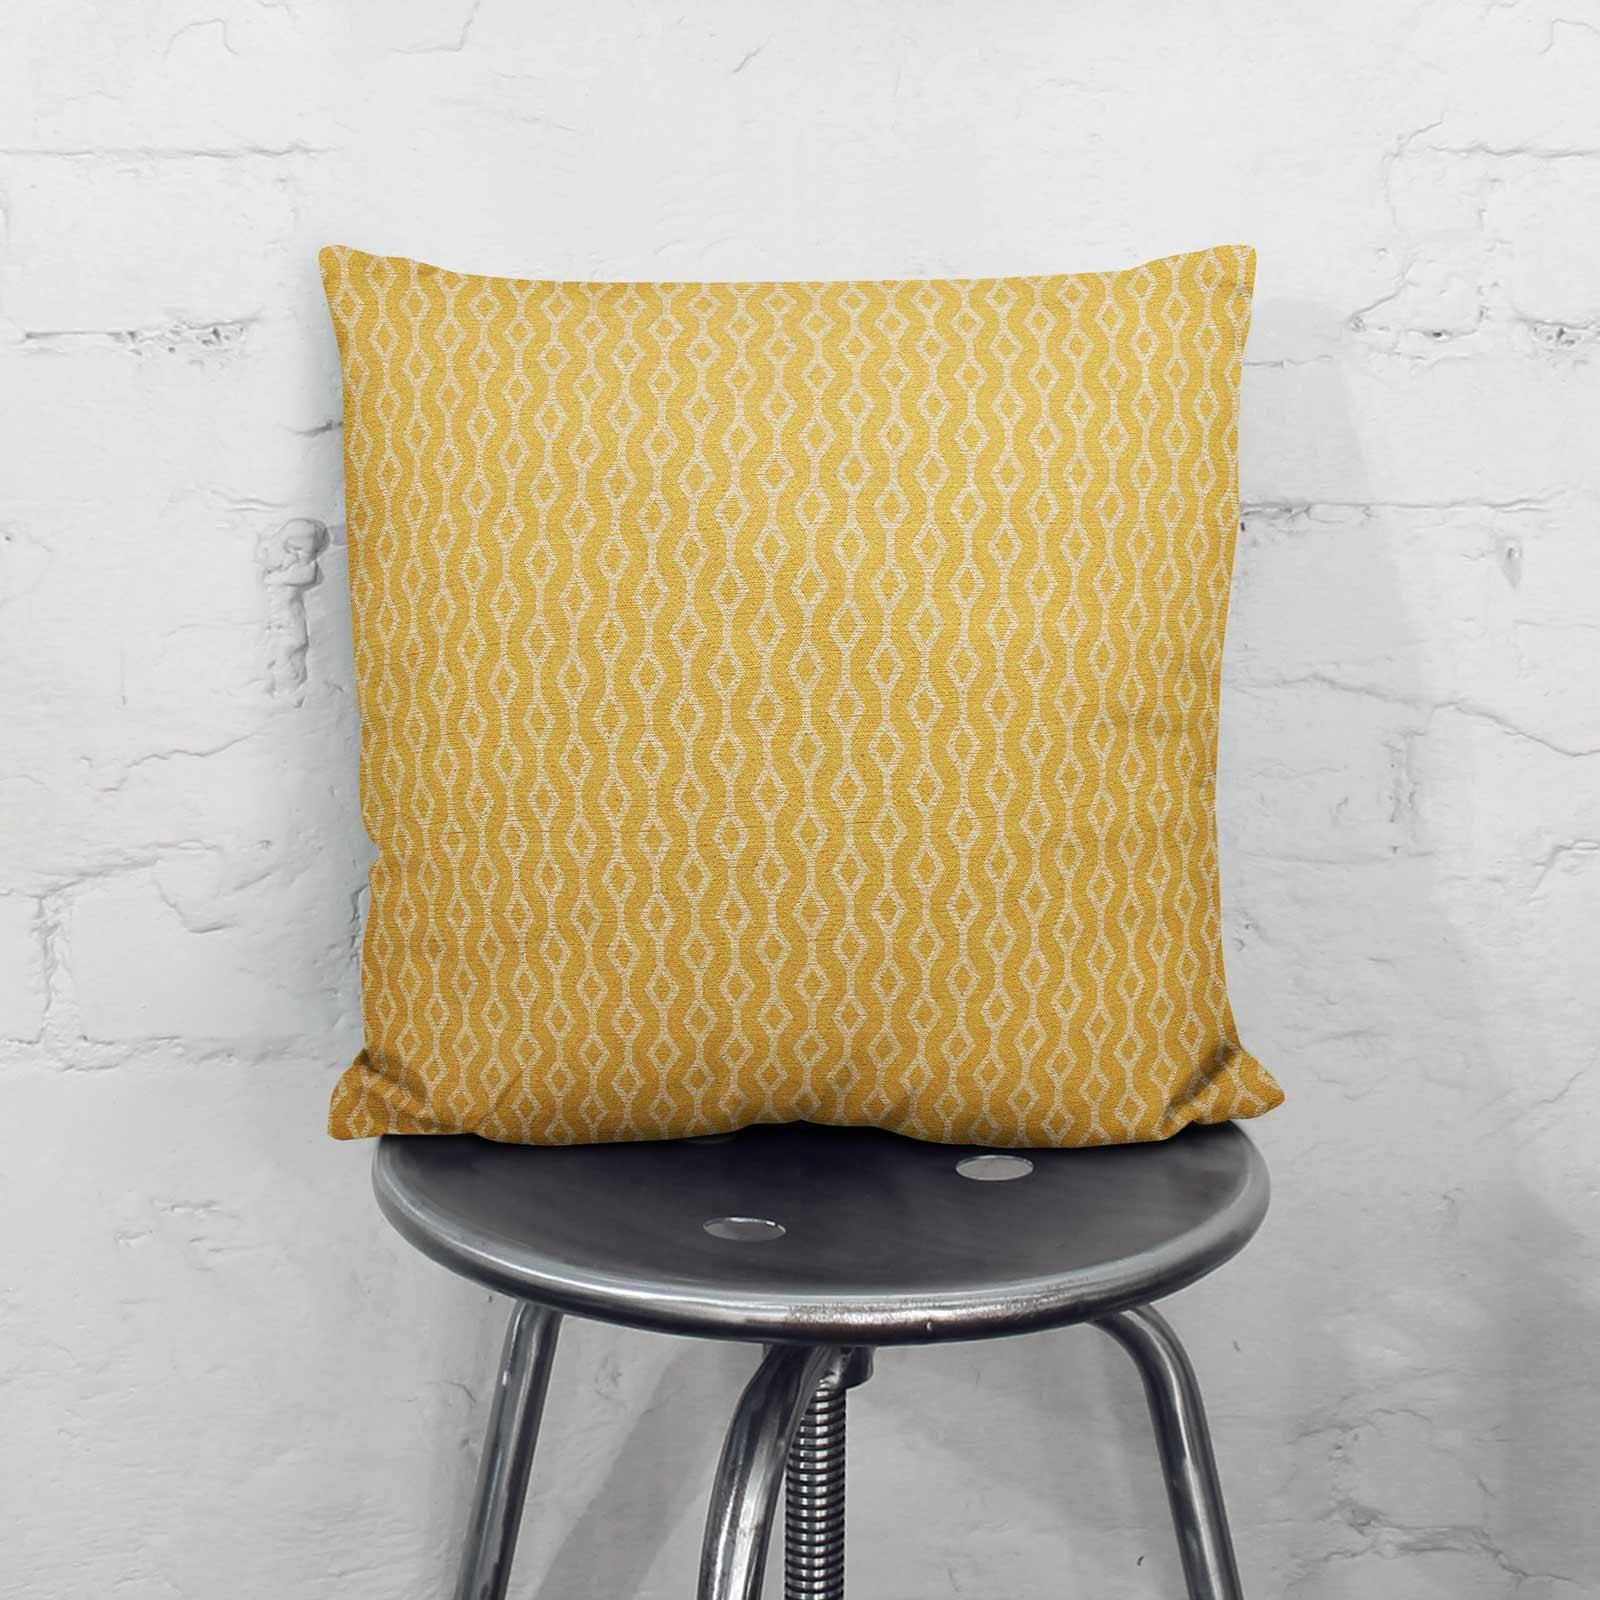 Grey-Ochre-Mustard-Cushion-Cover-Collection-17-034-18-034-Covers-Filled-Cushions thumbnail 91